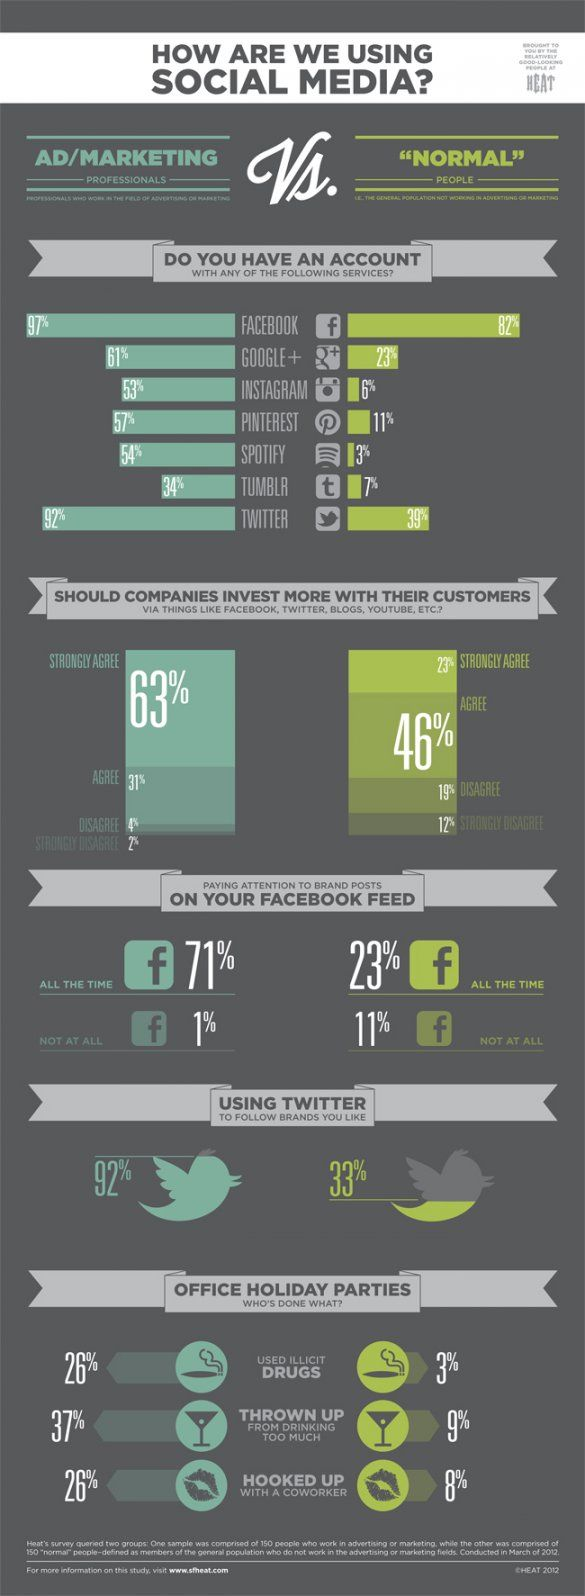 How are we using #socialmedia ?  #infographic